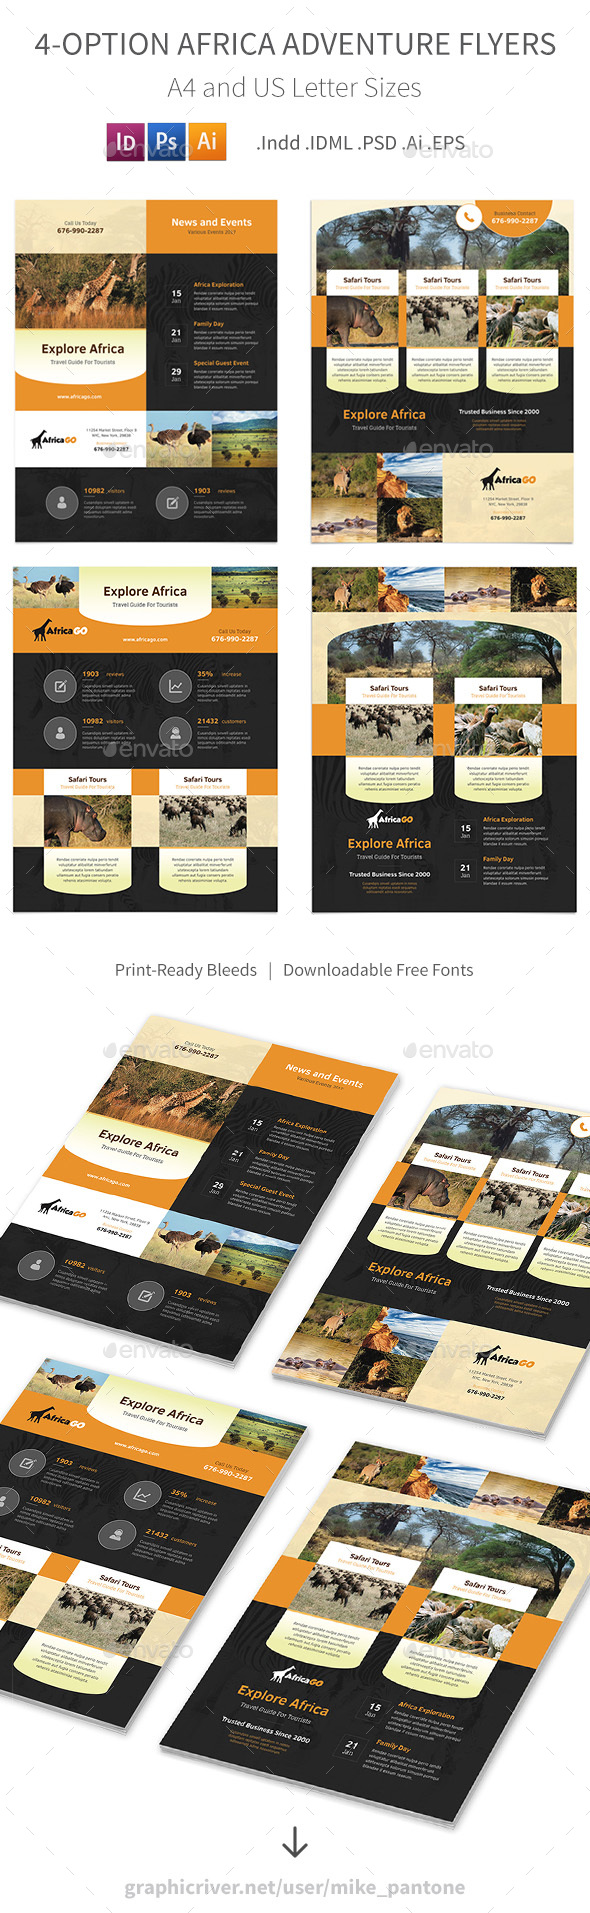 Africa Adventure Flyers – 4 Options - Corporate Flyers